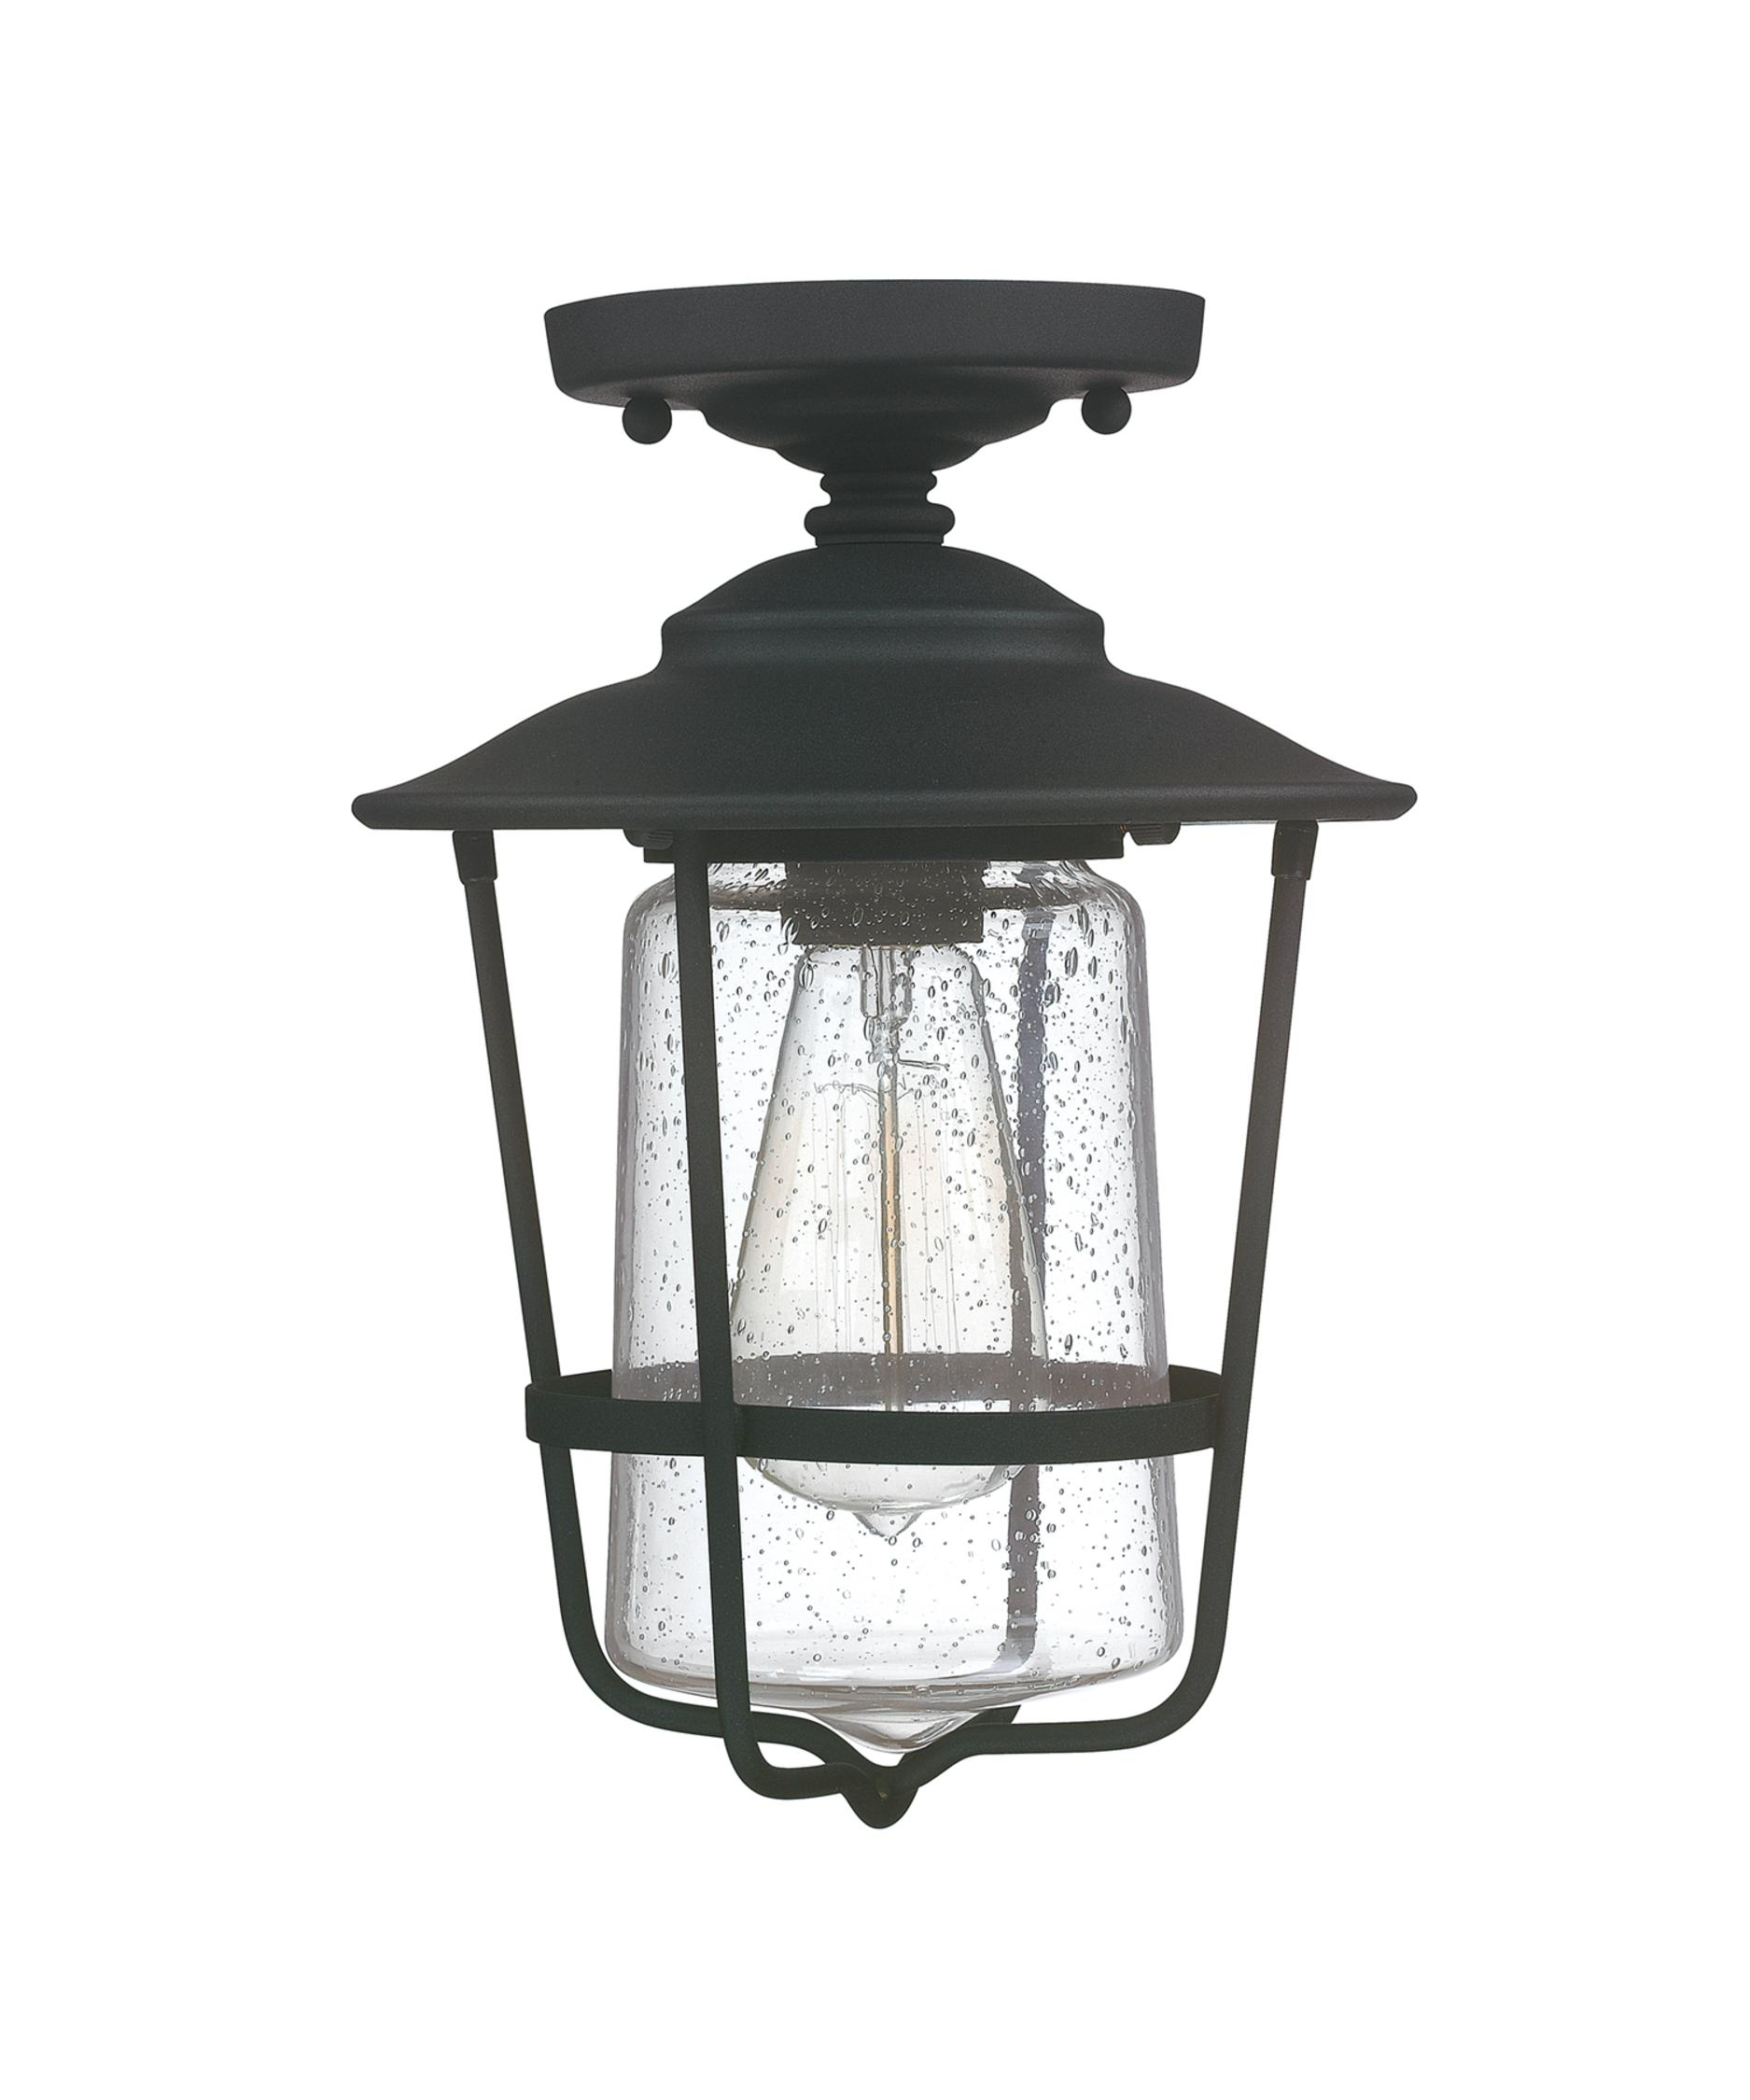 Good Ceiling Mount Outdoor Light Part - 4: Shown In Black Finish And Clear Glass